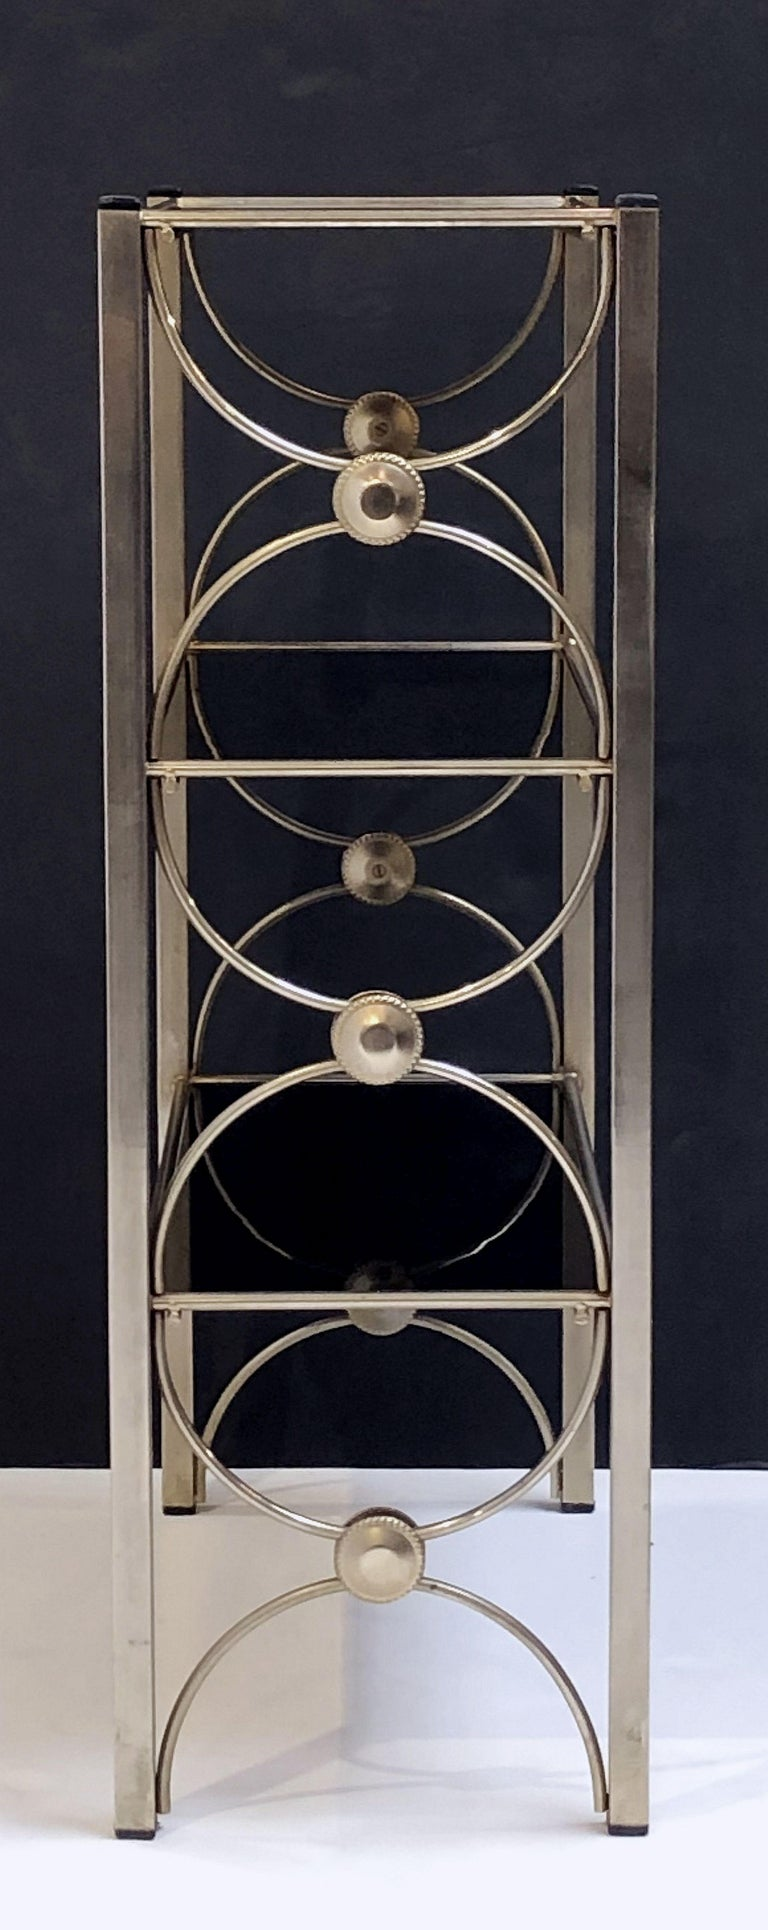 Three-Tiered Shelves or Étagère of Metal and Black Glass In Good Condition For Sale In Austin, TX